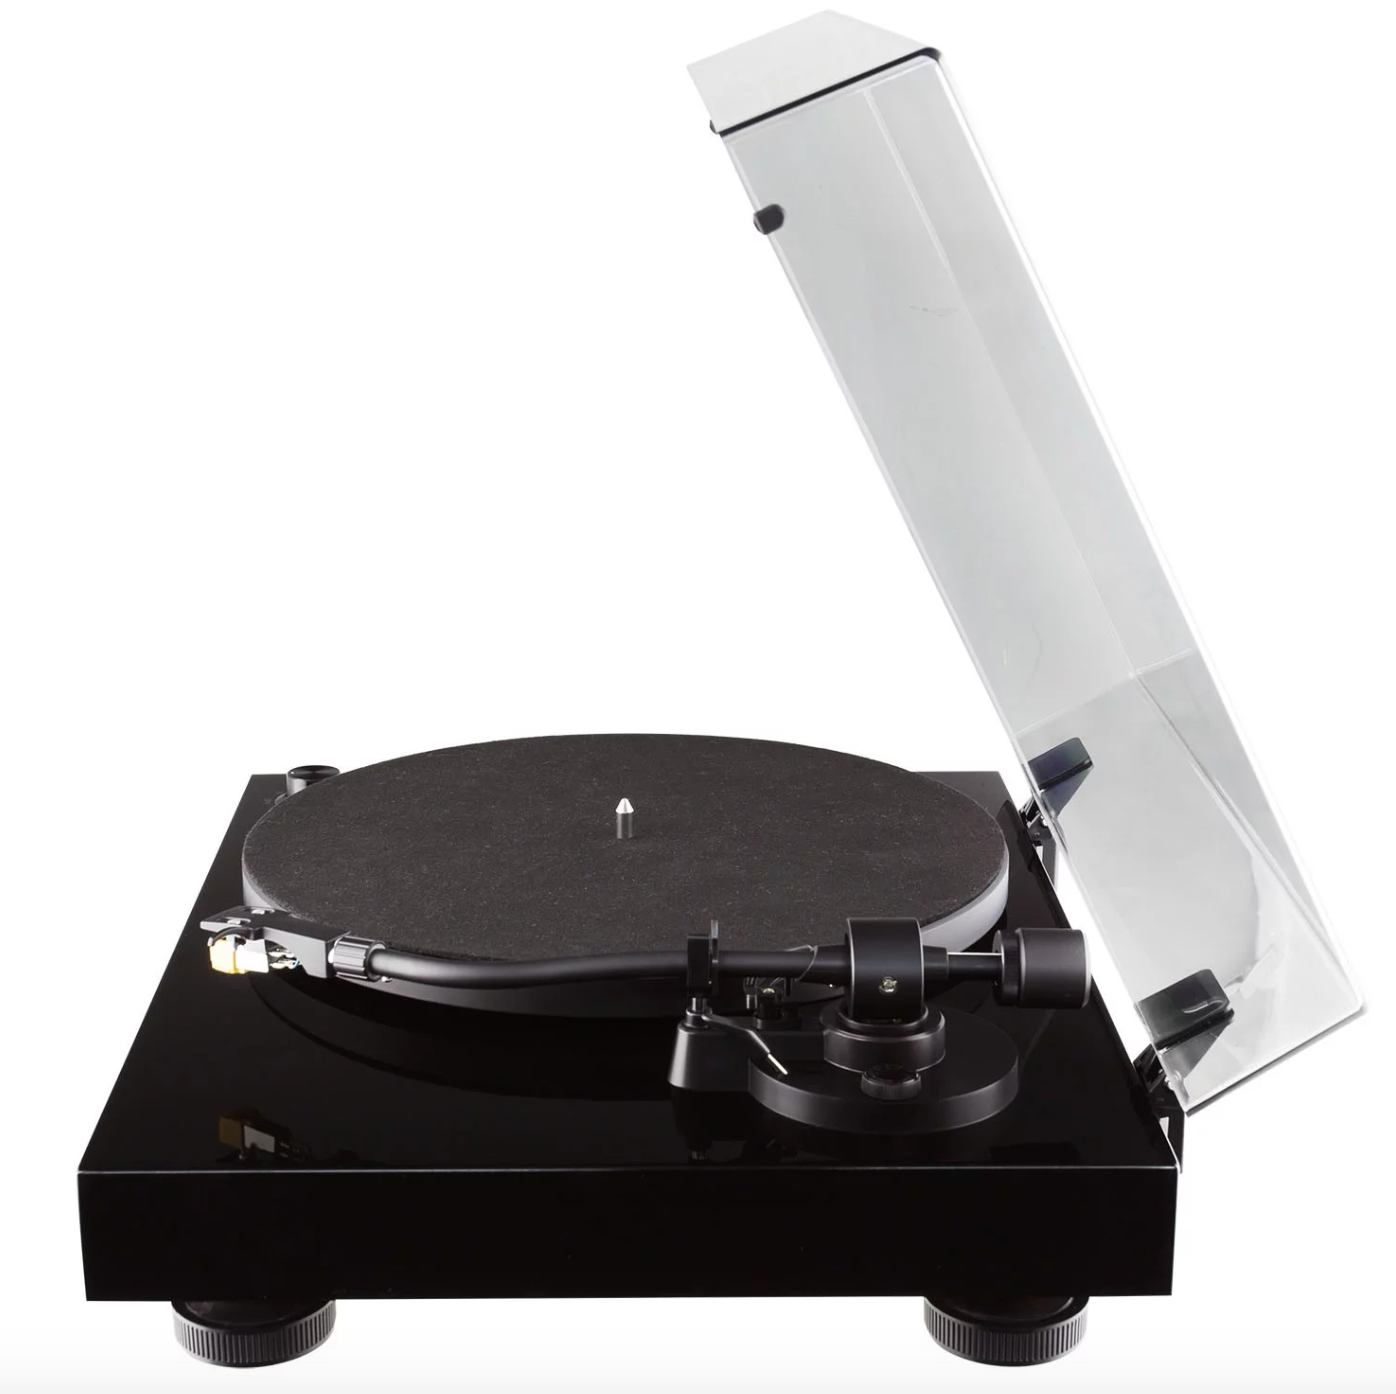 Fluance RT80 win record store day turntable high-fidelity prize